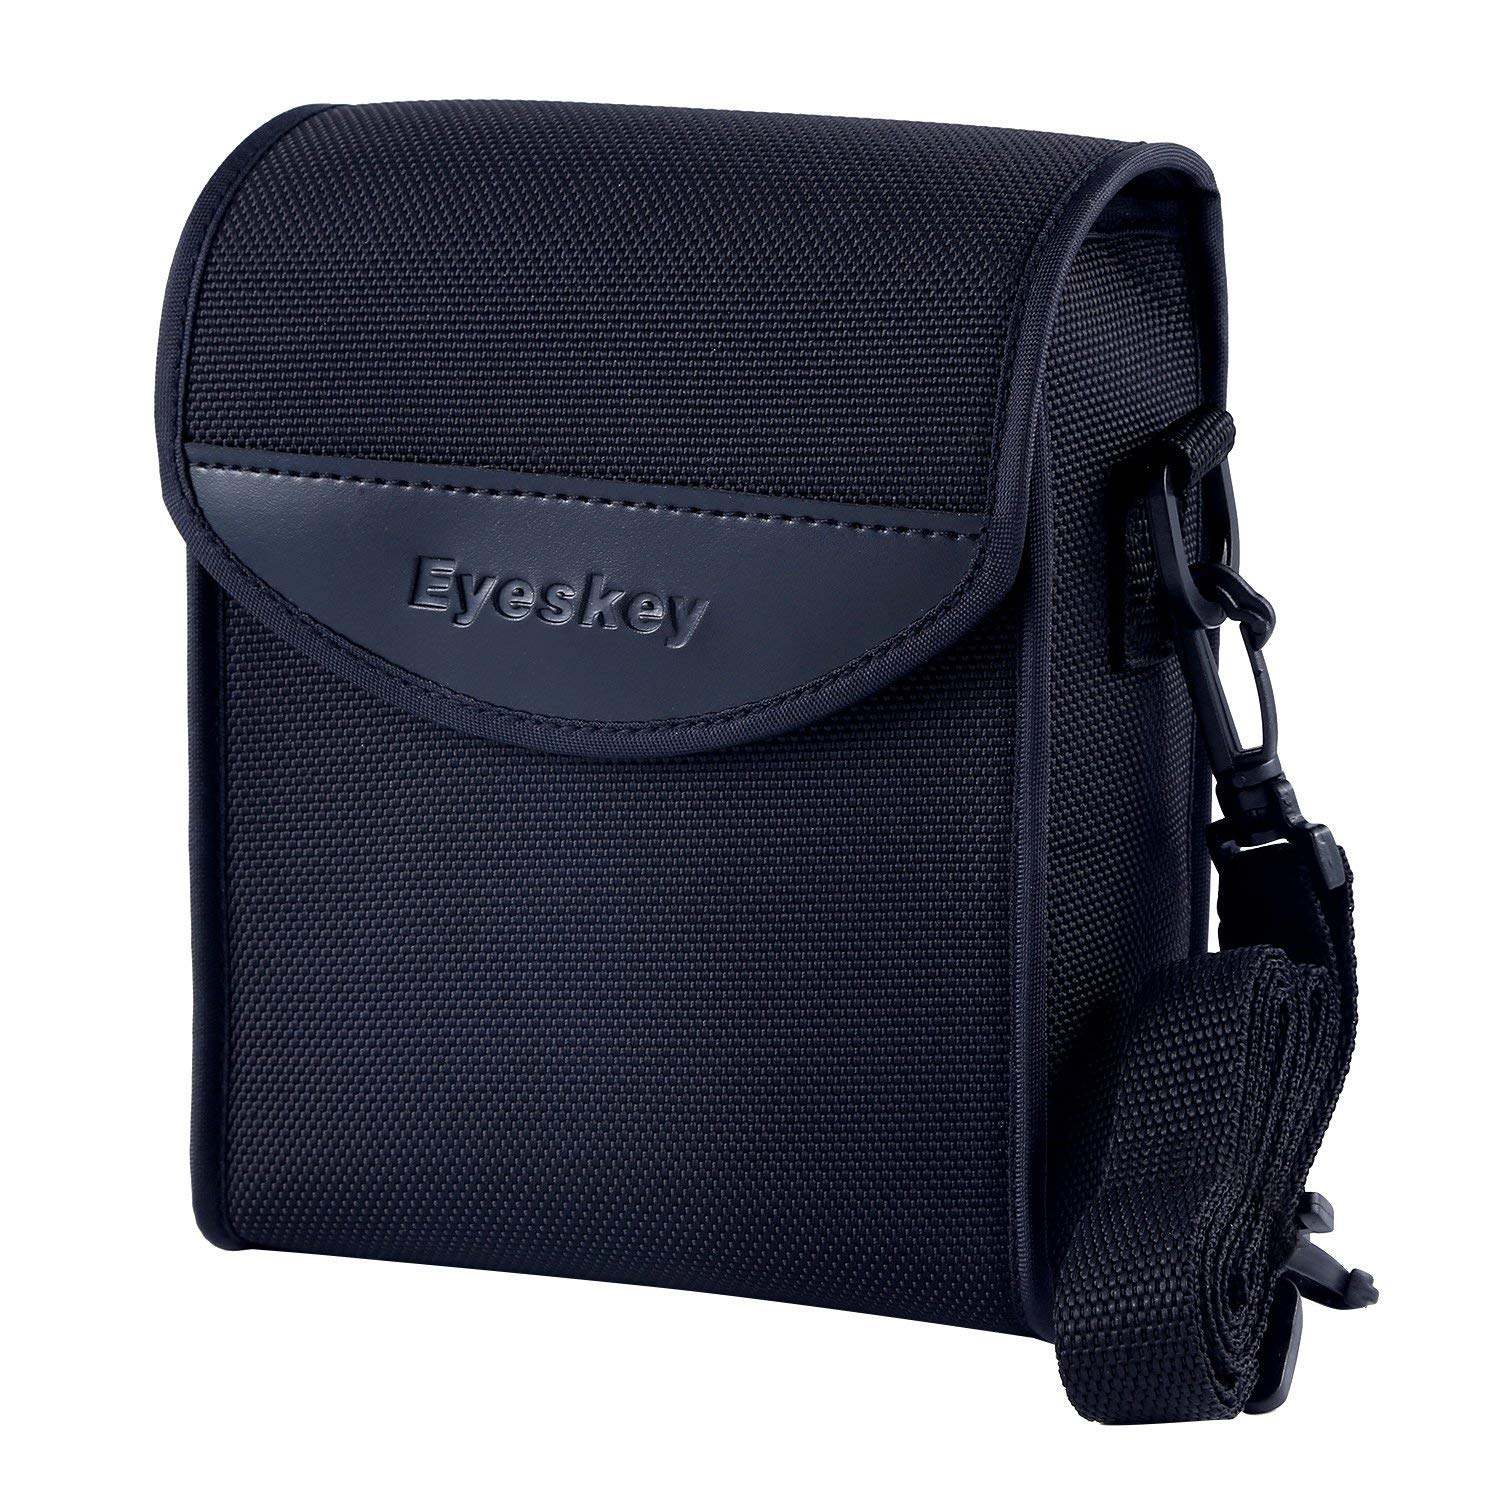 Universal 42mm Roof Prism Binoculars Case, Essential Accessory for Your Valuable Binoculars, and Durable